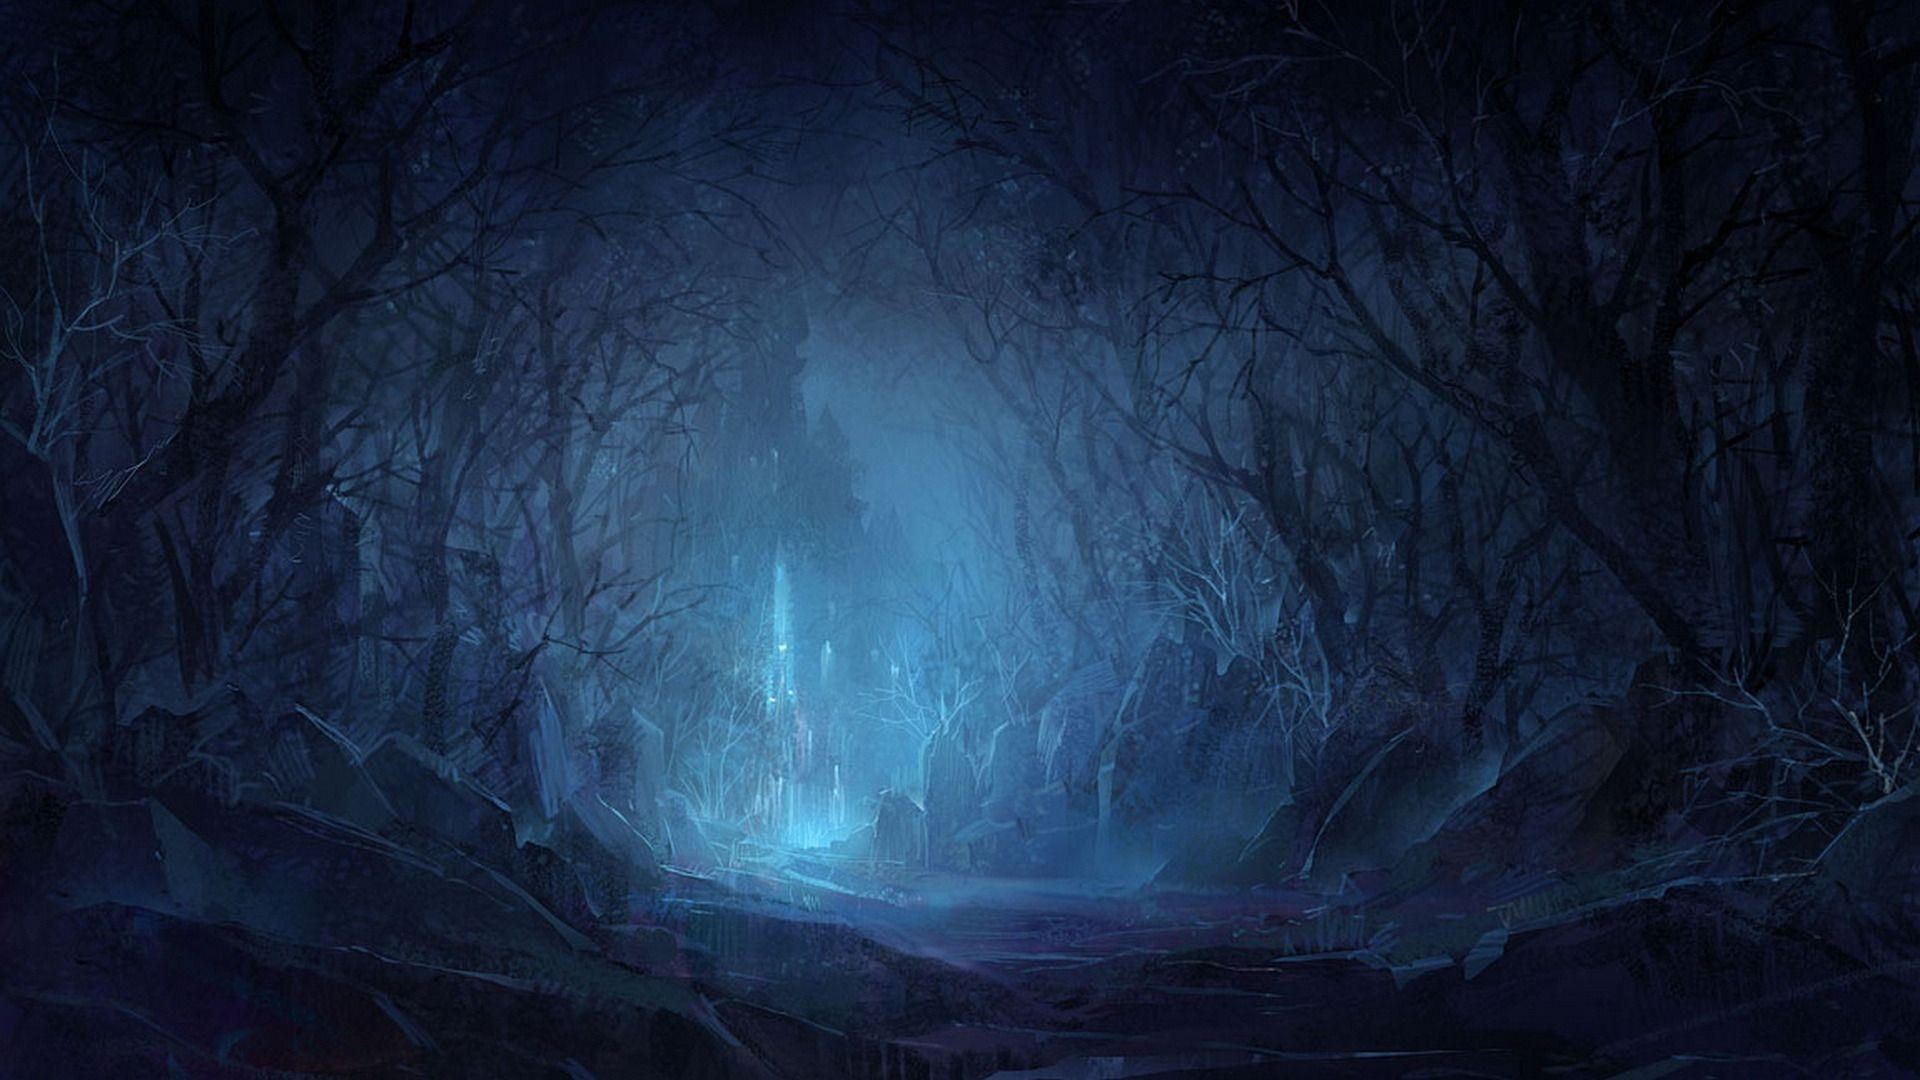 Dark Blue Wallpaper X Wallpapers Dark Forest And Blue Stock Photos X